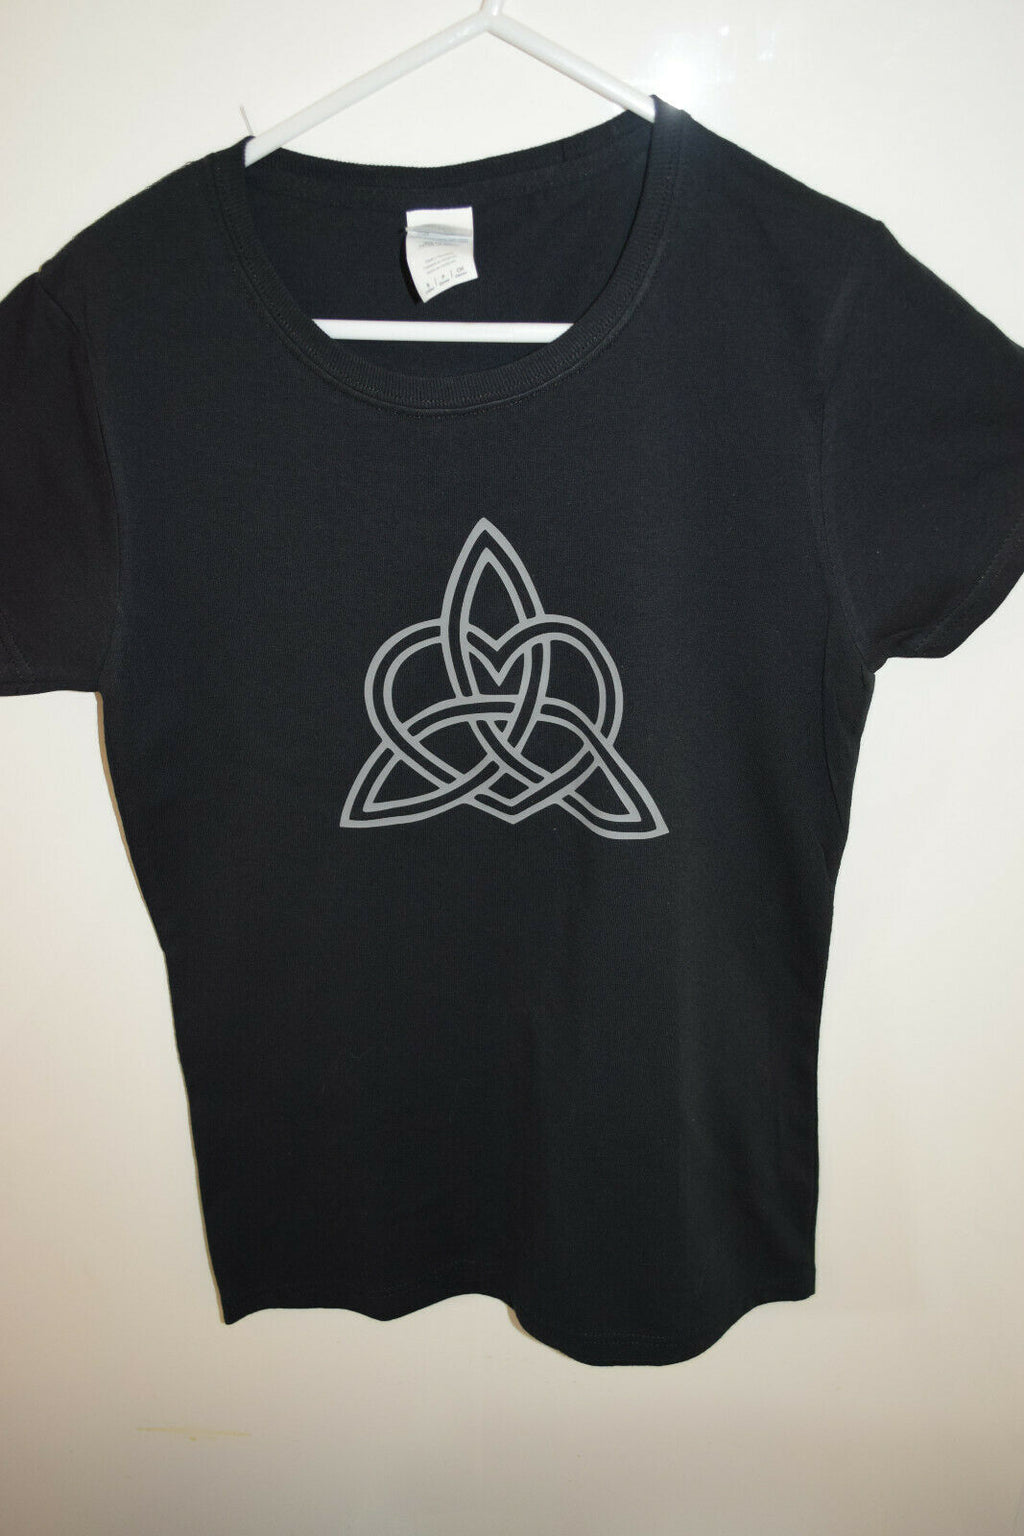 Triquetra Black cotton t-shirt ladies top shirt women's Size 8 small Celtic